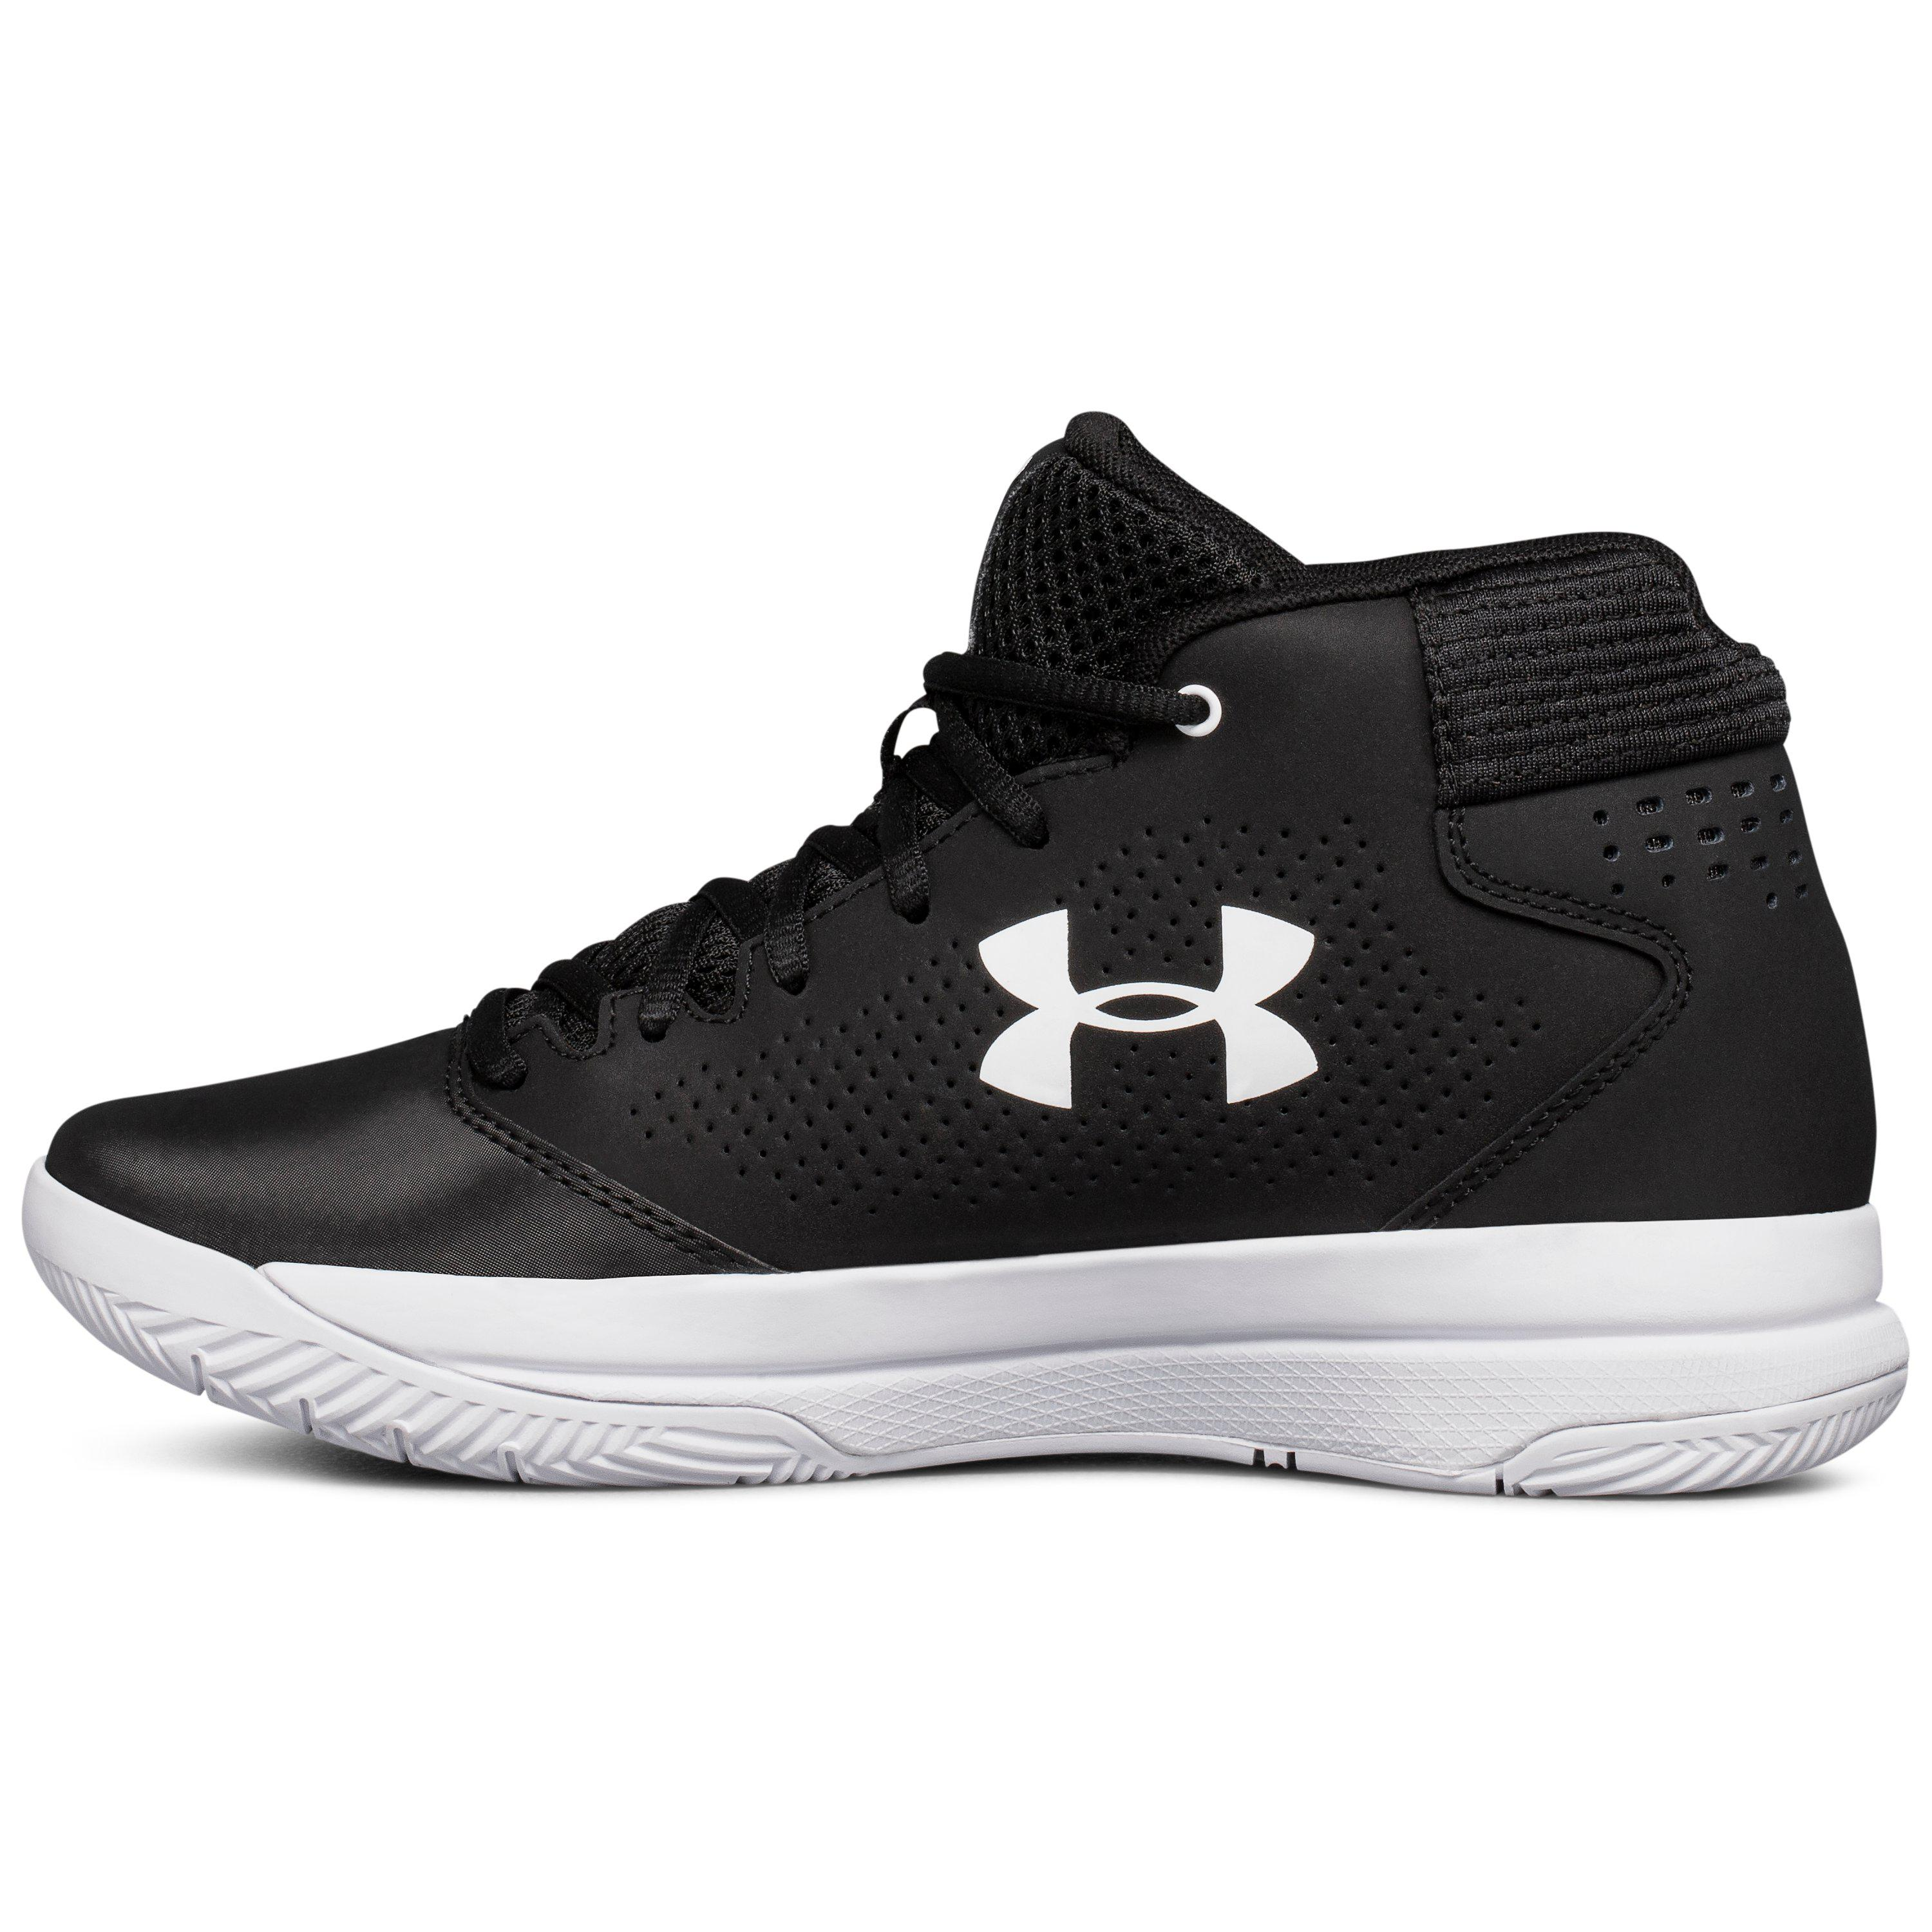 0ae1c690 Womens Under Armour Jet Basketball Shoes ✓ Shoes Collections